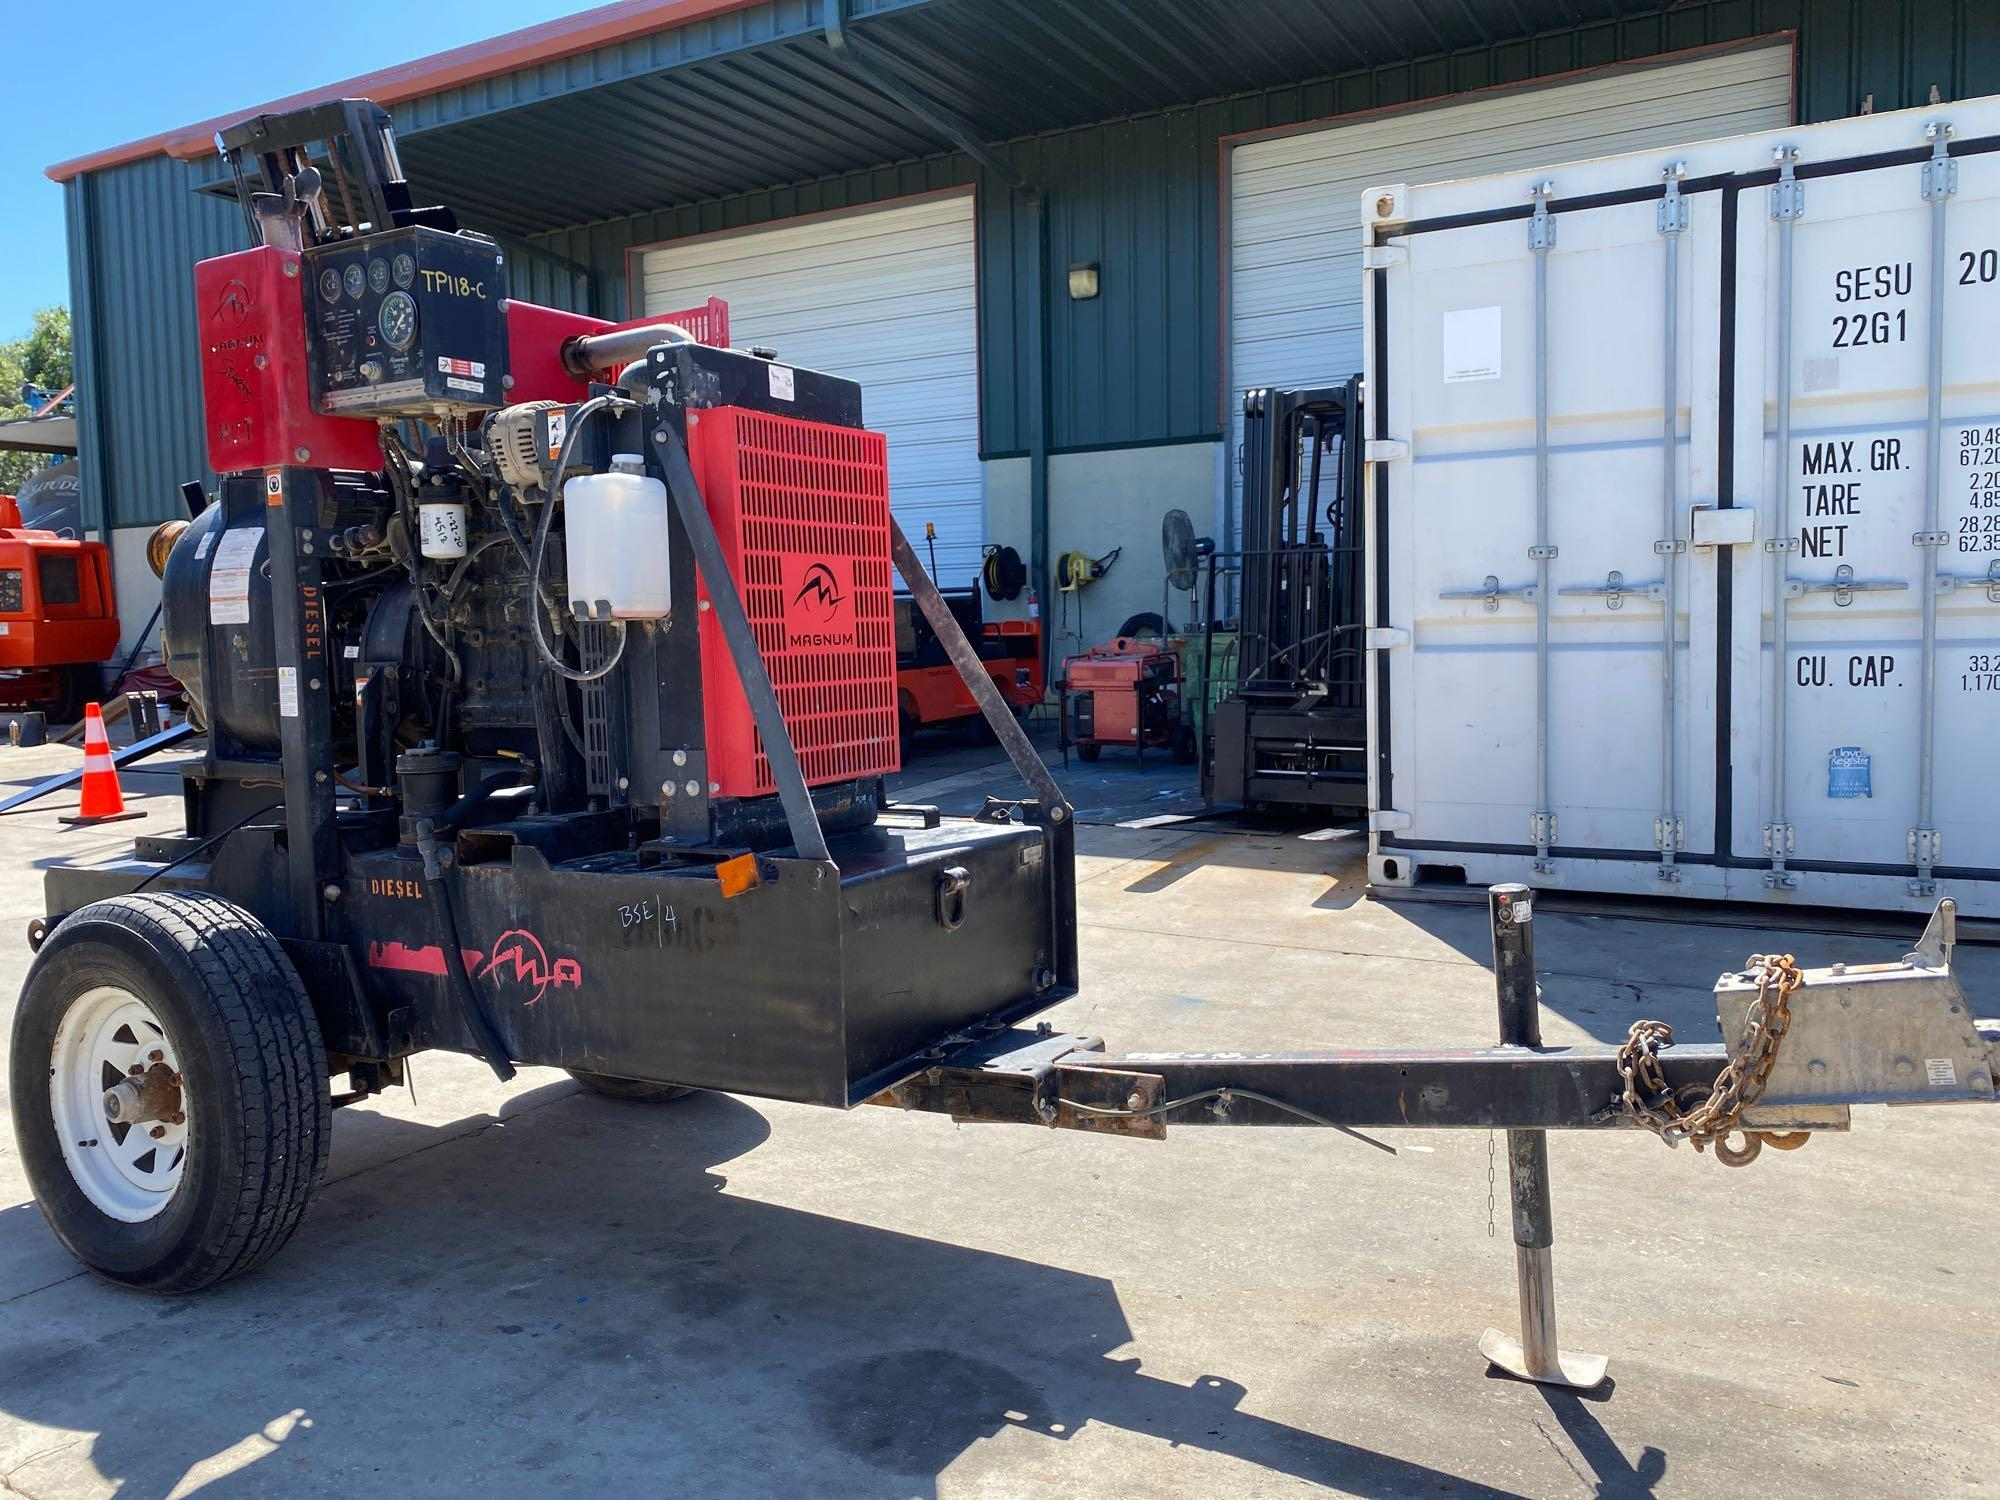 TRAILER MOUNTED MAGNUM 4 INCH DIESEL PUMP, RUNS AND OPERATES - Image 3 of 9